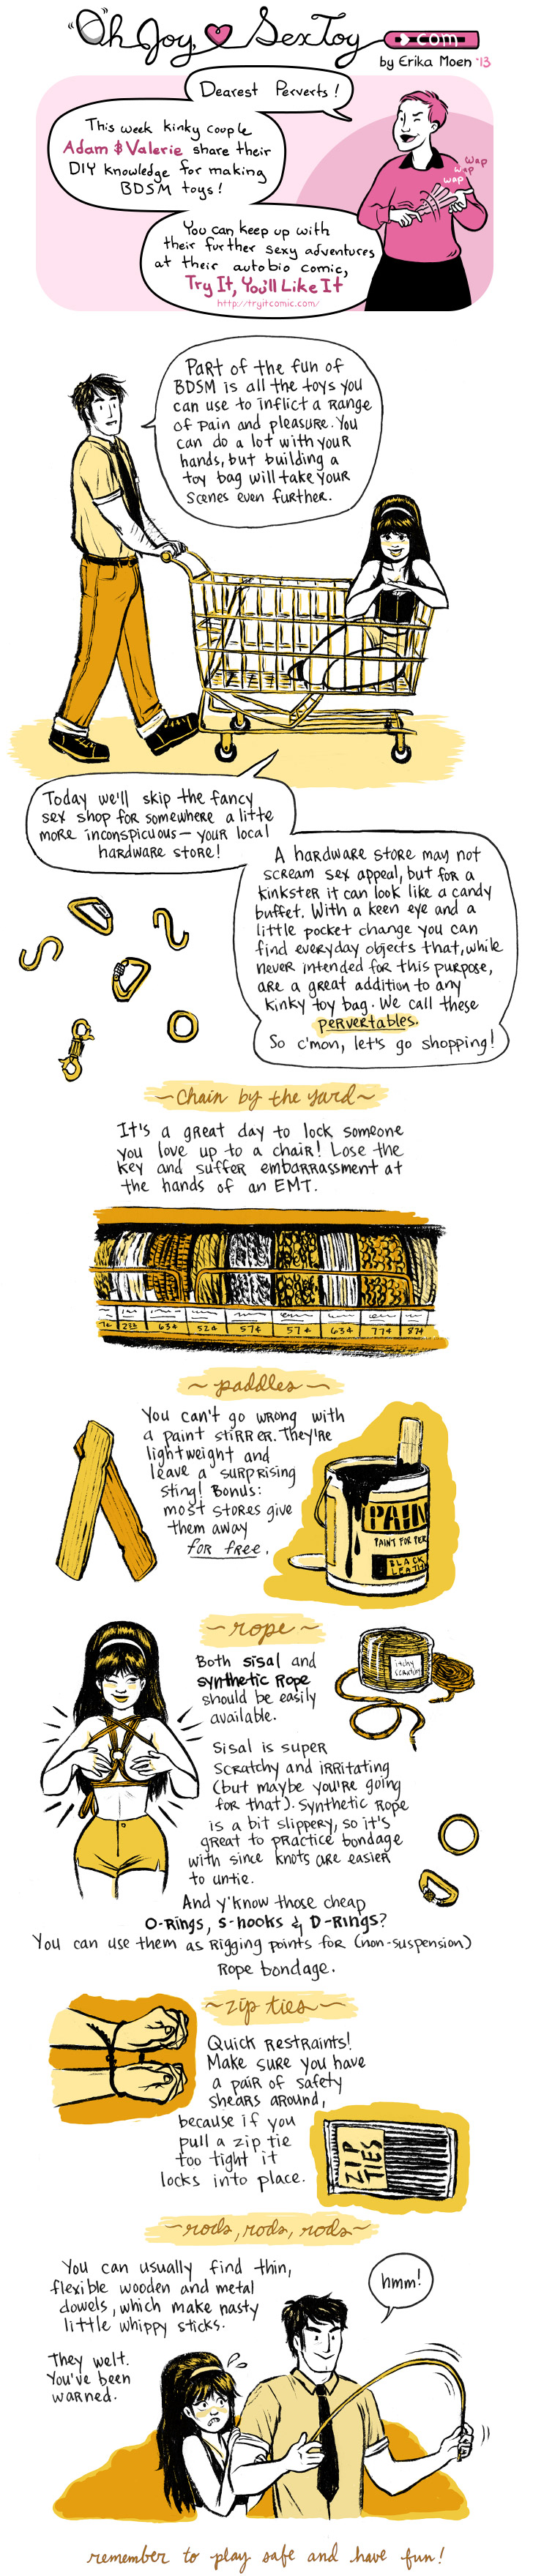 A comic about stocking up on BDSM supplies from hardware stores